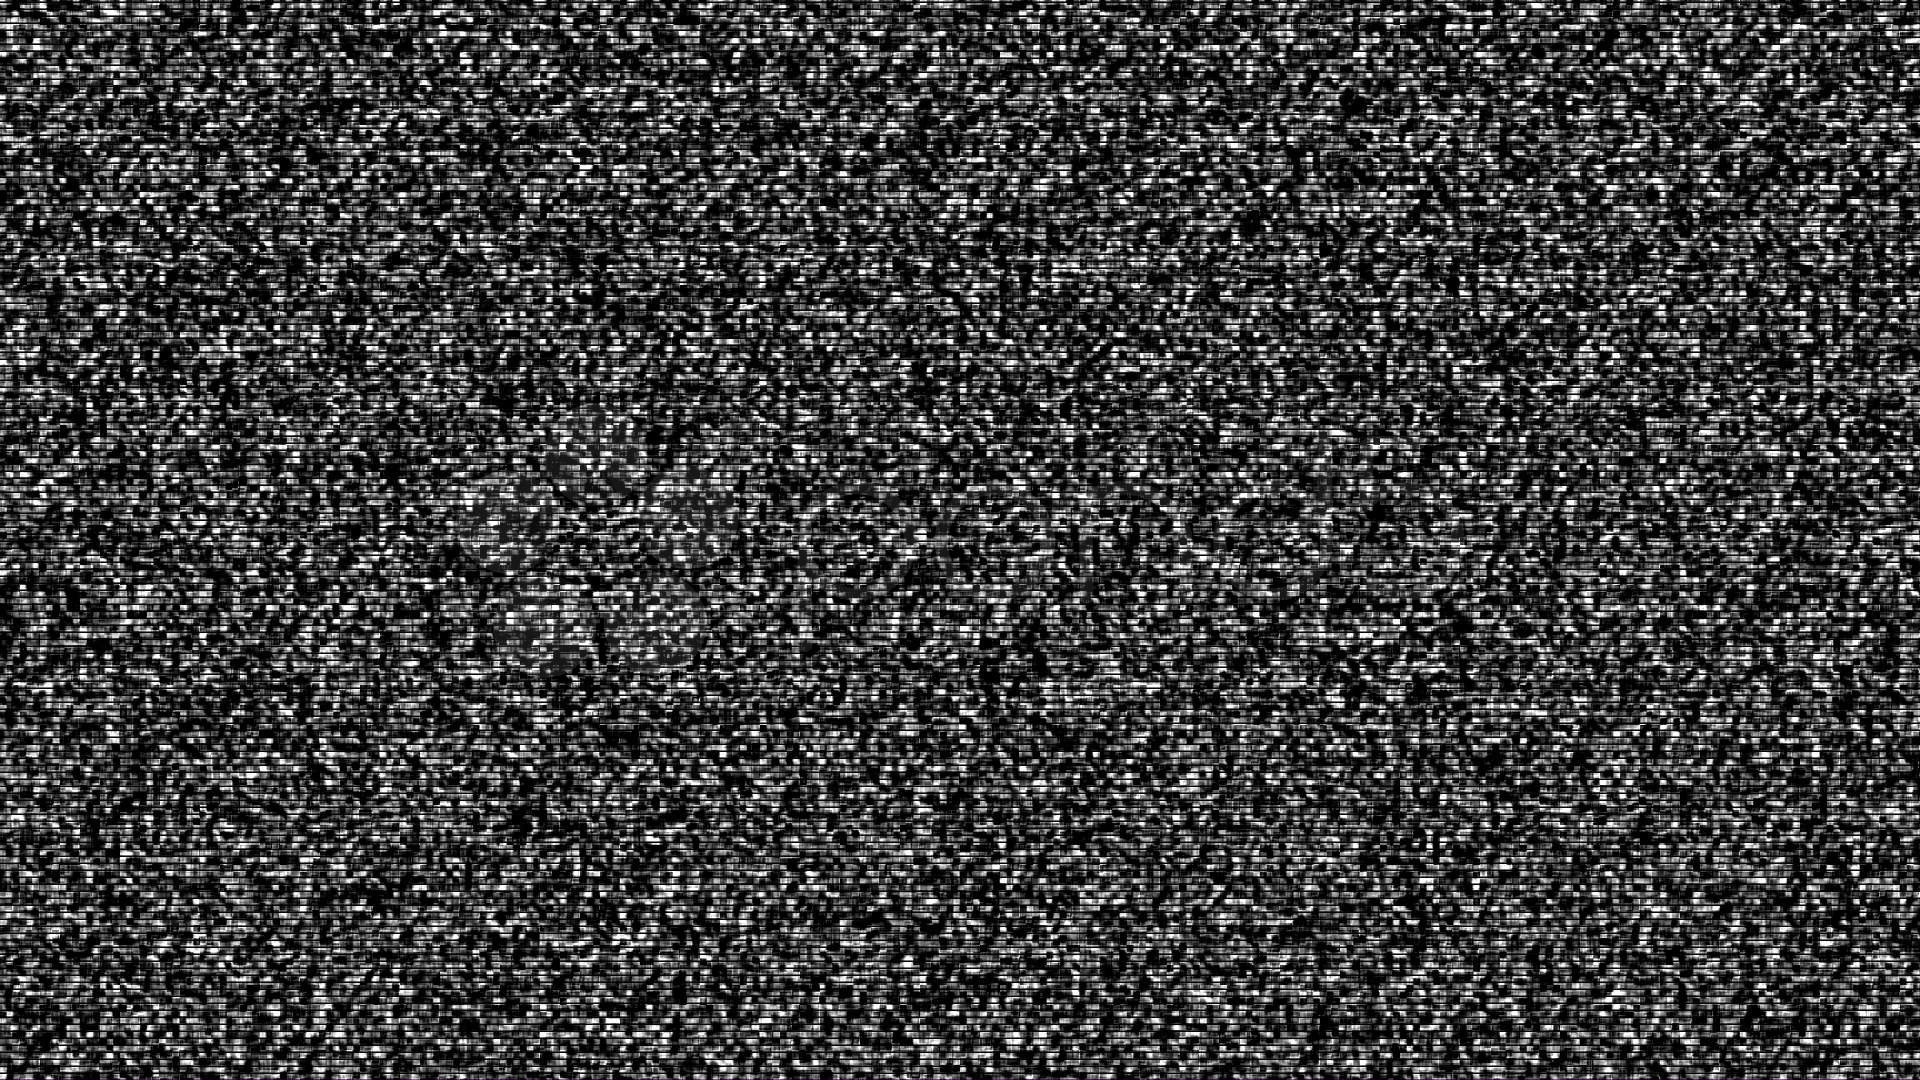 Tv Static Background Hd Tv static noise with sound 1920x1080